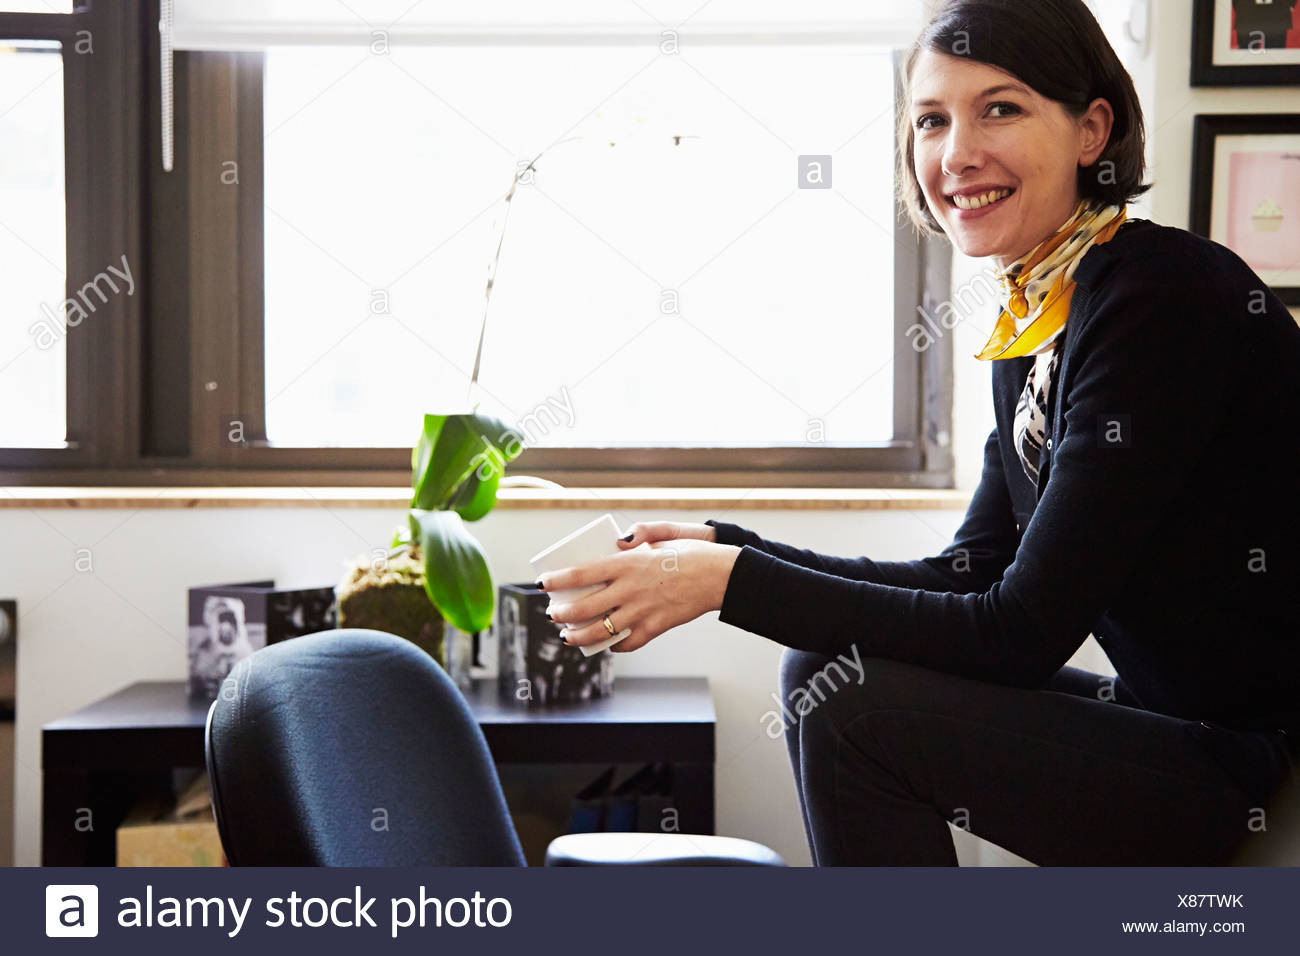 Businesswoman sitting in office - Stock Image